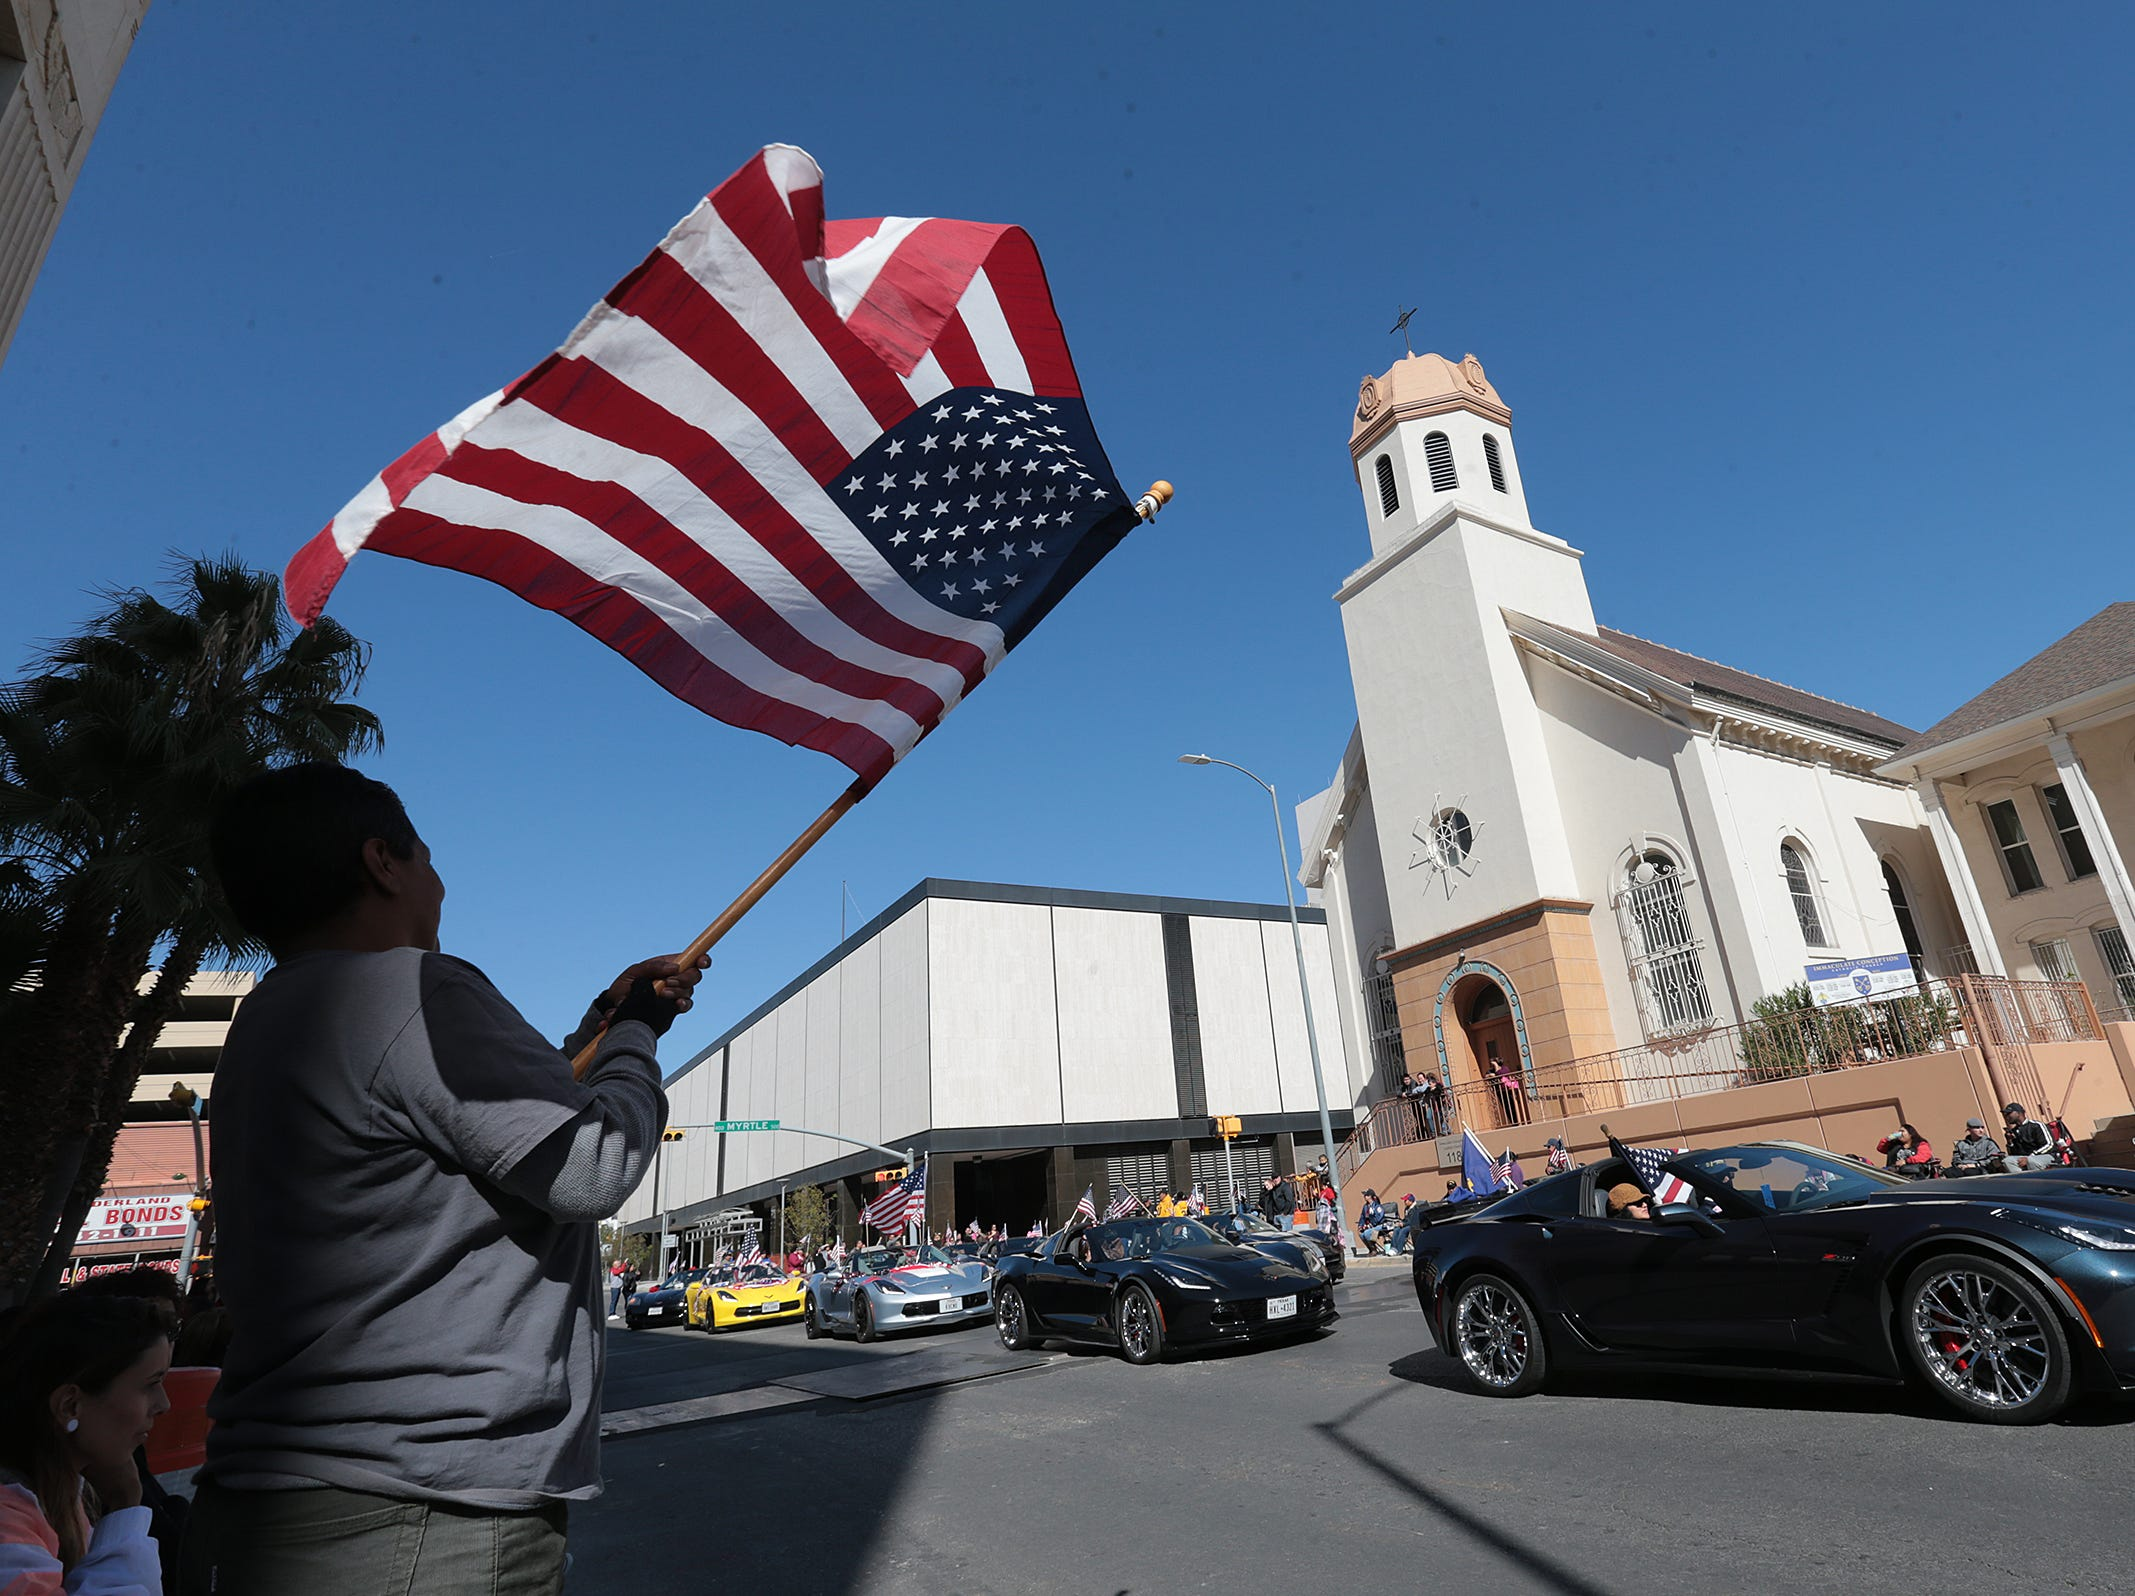 El Pasoans lined downtown streets Saturday to pay tribute to veterans at the annual El Paso Veteran's Day Parade.